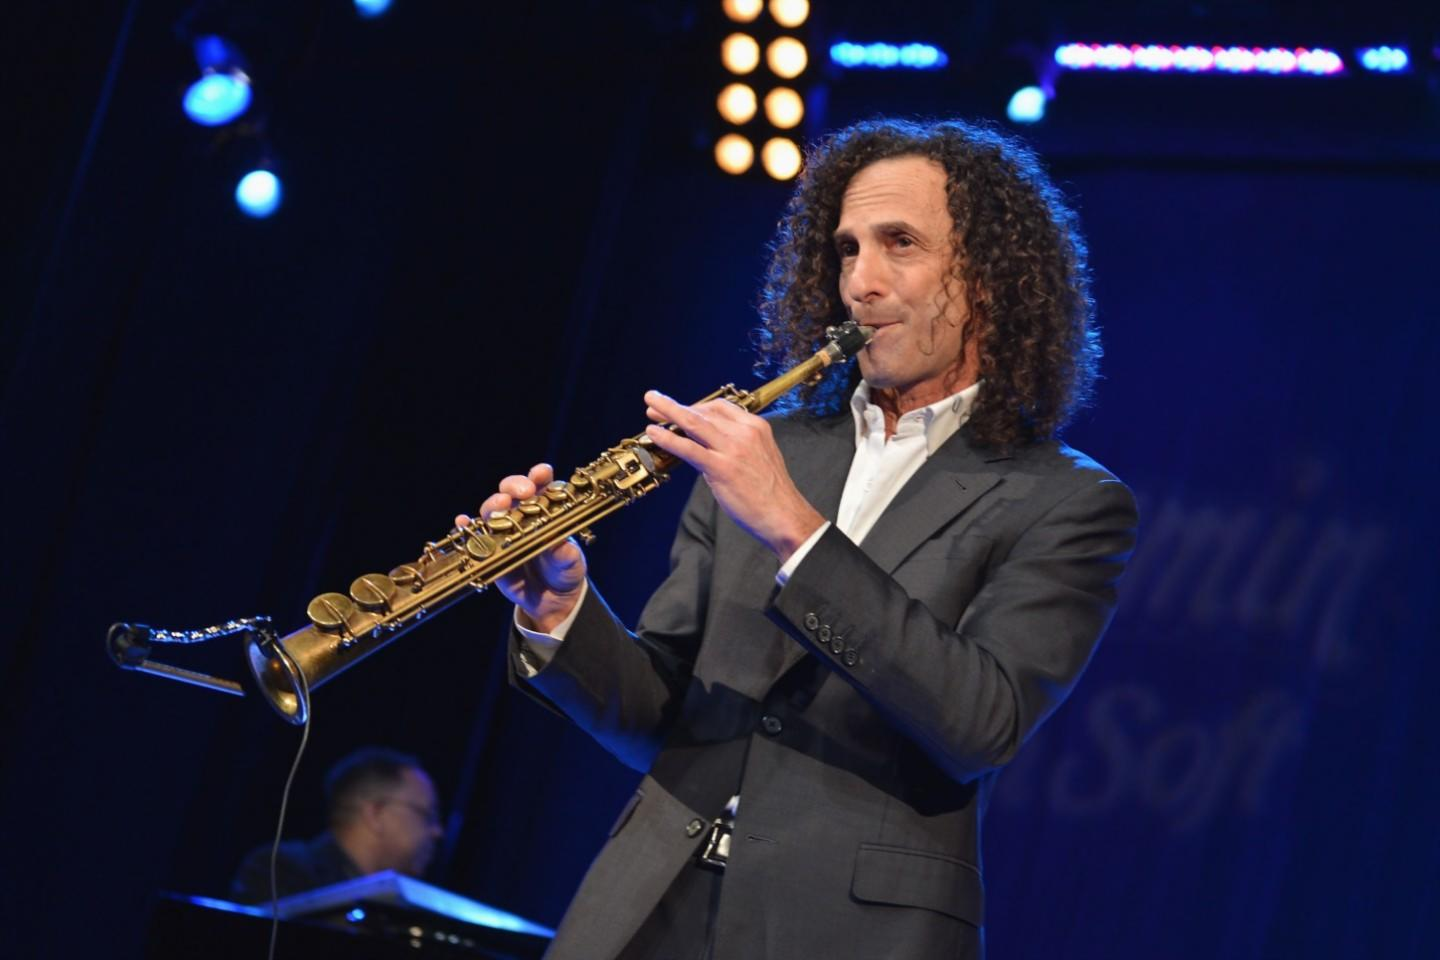 Kenny G Tour 2020 Kenny G Tickets | Kenny G Tour Dates 2020 and Concert Tickets